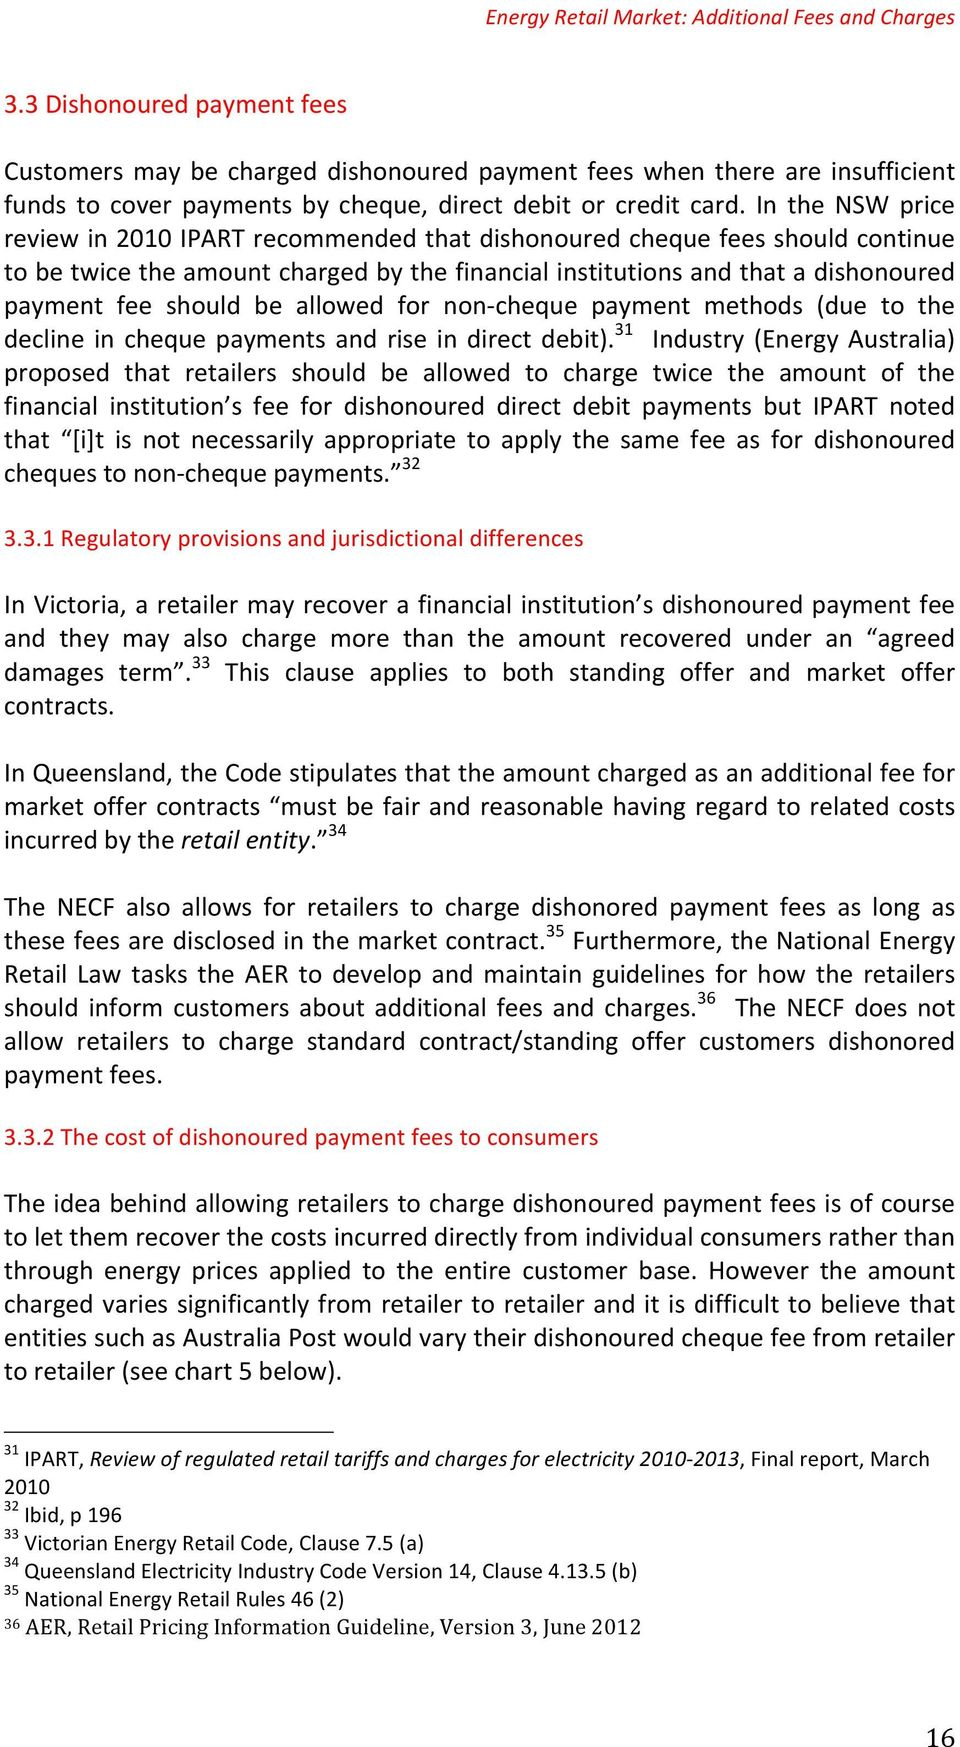 In the NSW price reviewin2010ipartrecommendedthatdishonouredchequefeesshouldcontinue tobetwicetheamountchargedbythefinancialinstitutionsandthatadishonoured payment fee should be allowed for